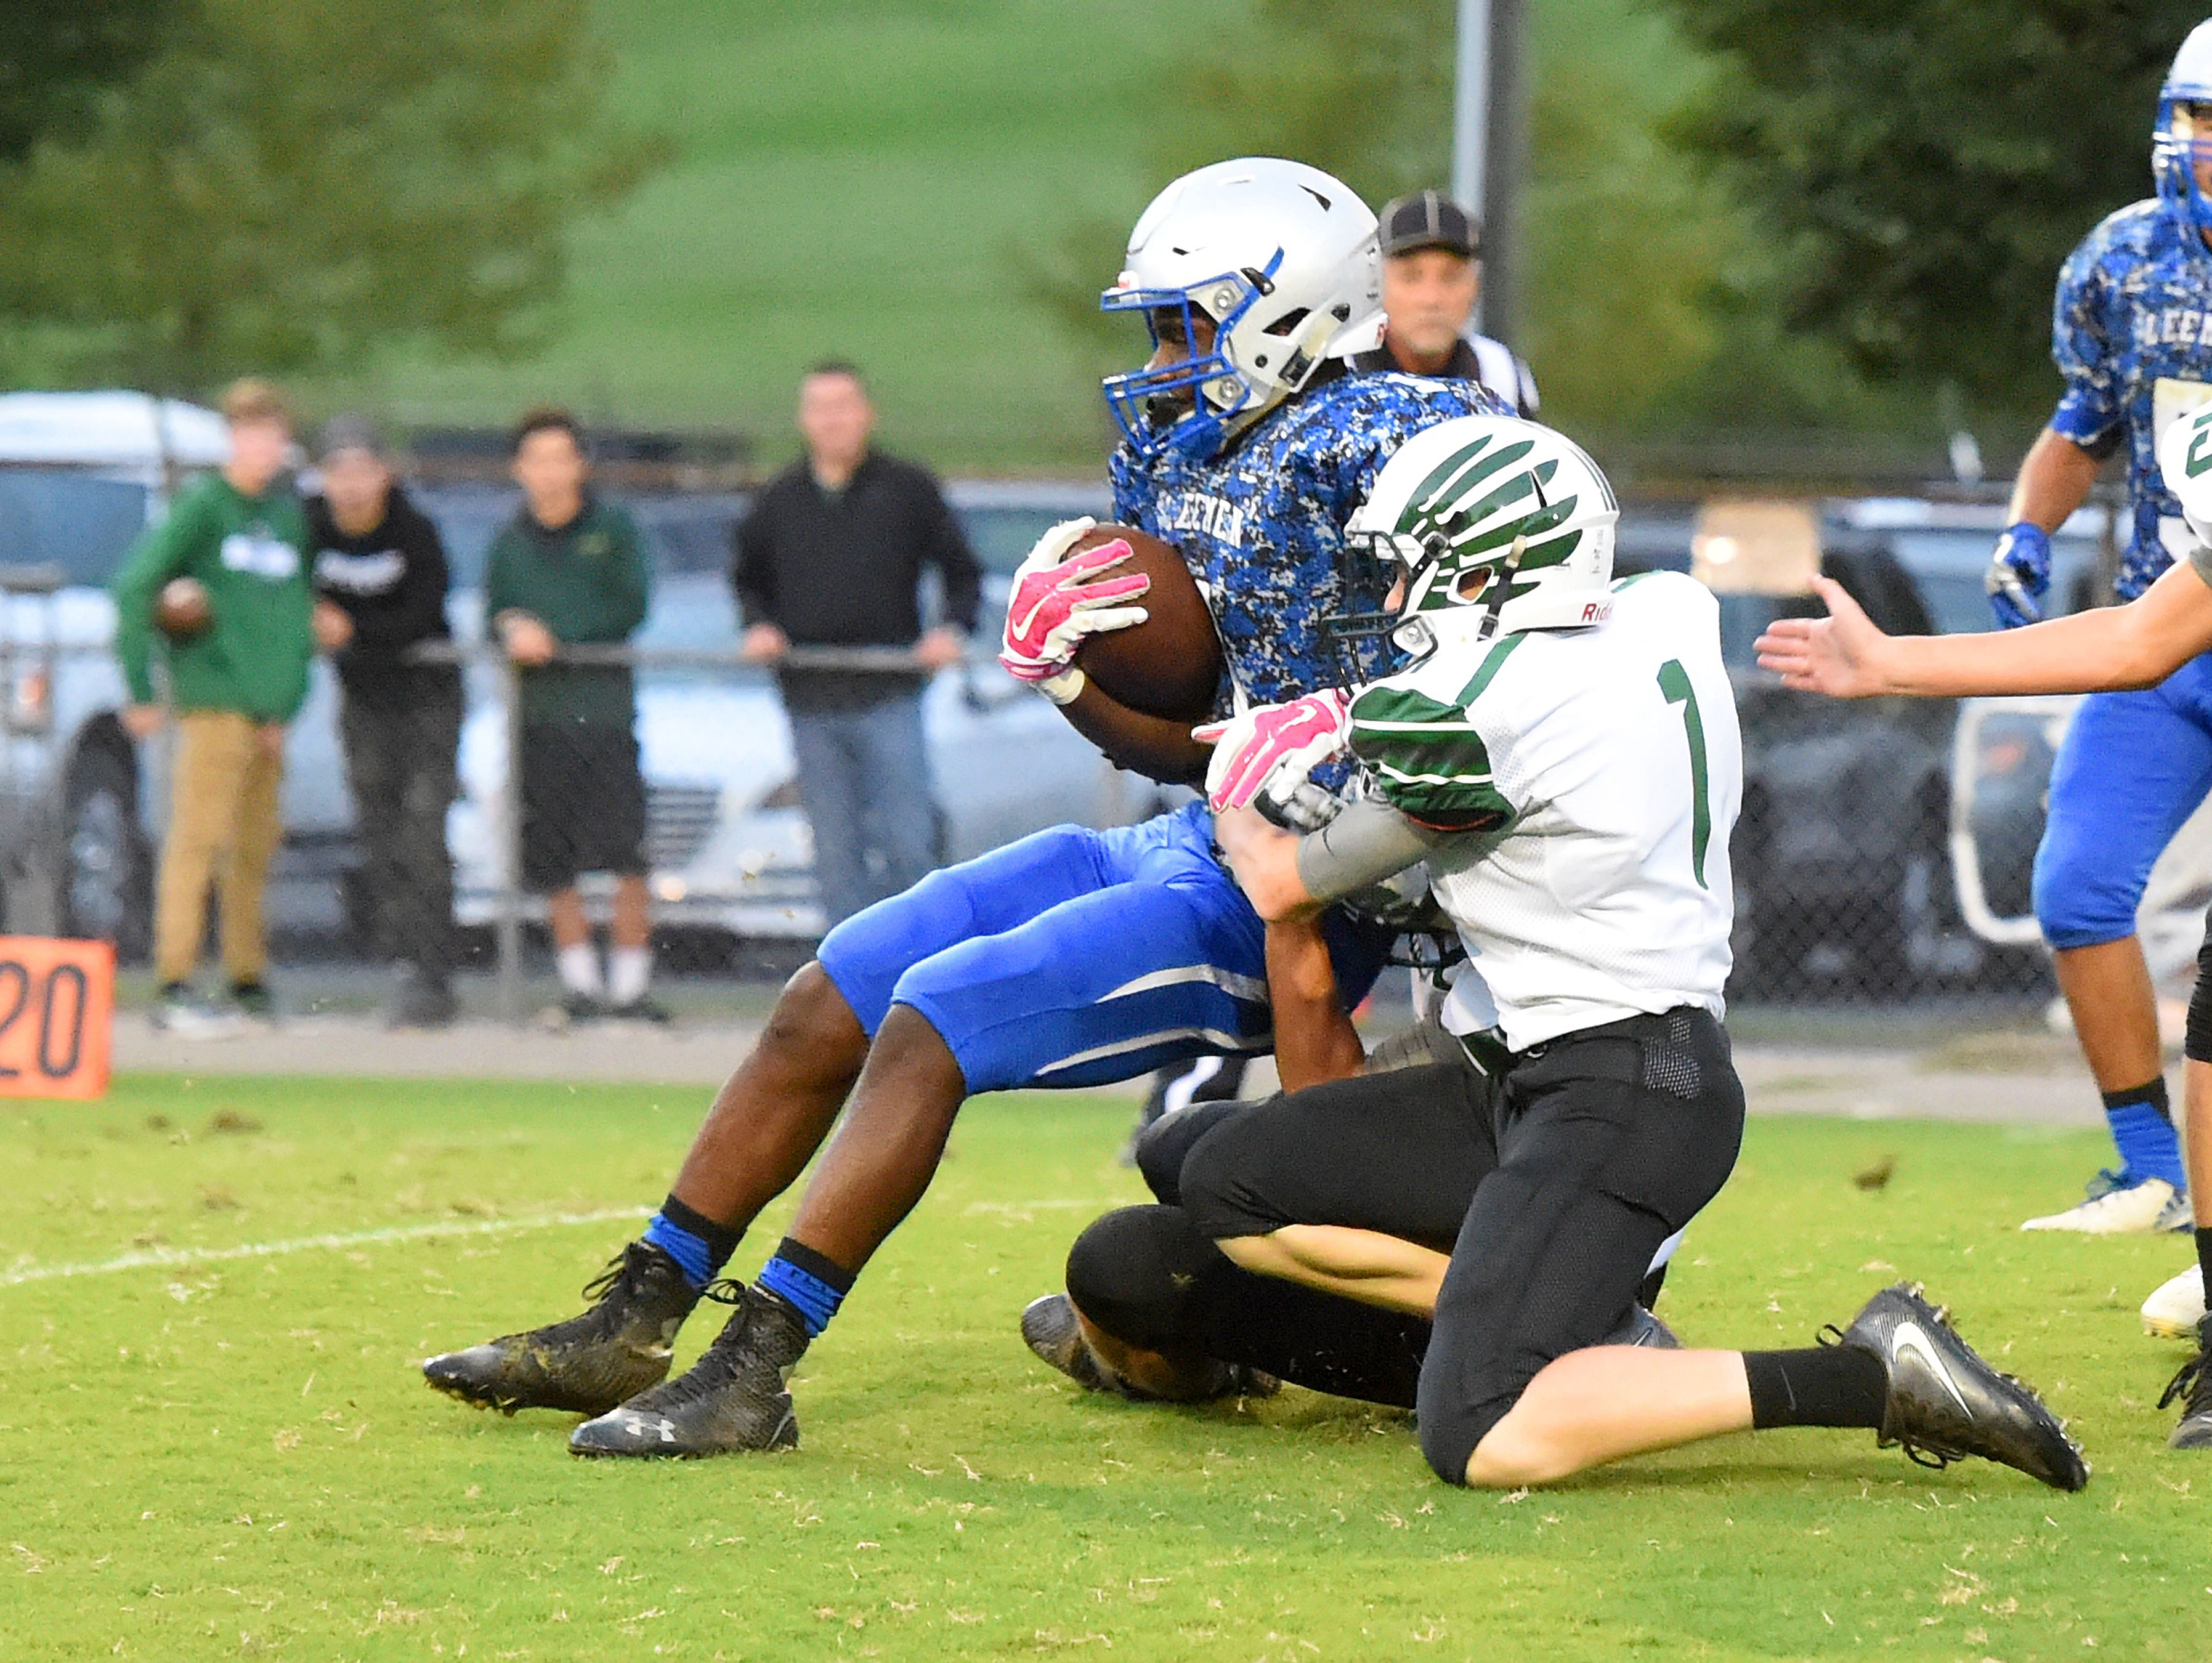 Robert E. Lee's Hurliq Williams is brought down by Broadway's Bryar Wheeler during a football game played in Staunton on Monday, Oct. 3, 2016.